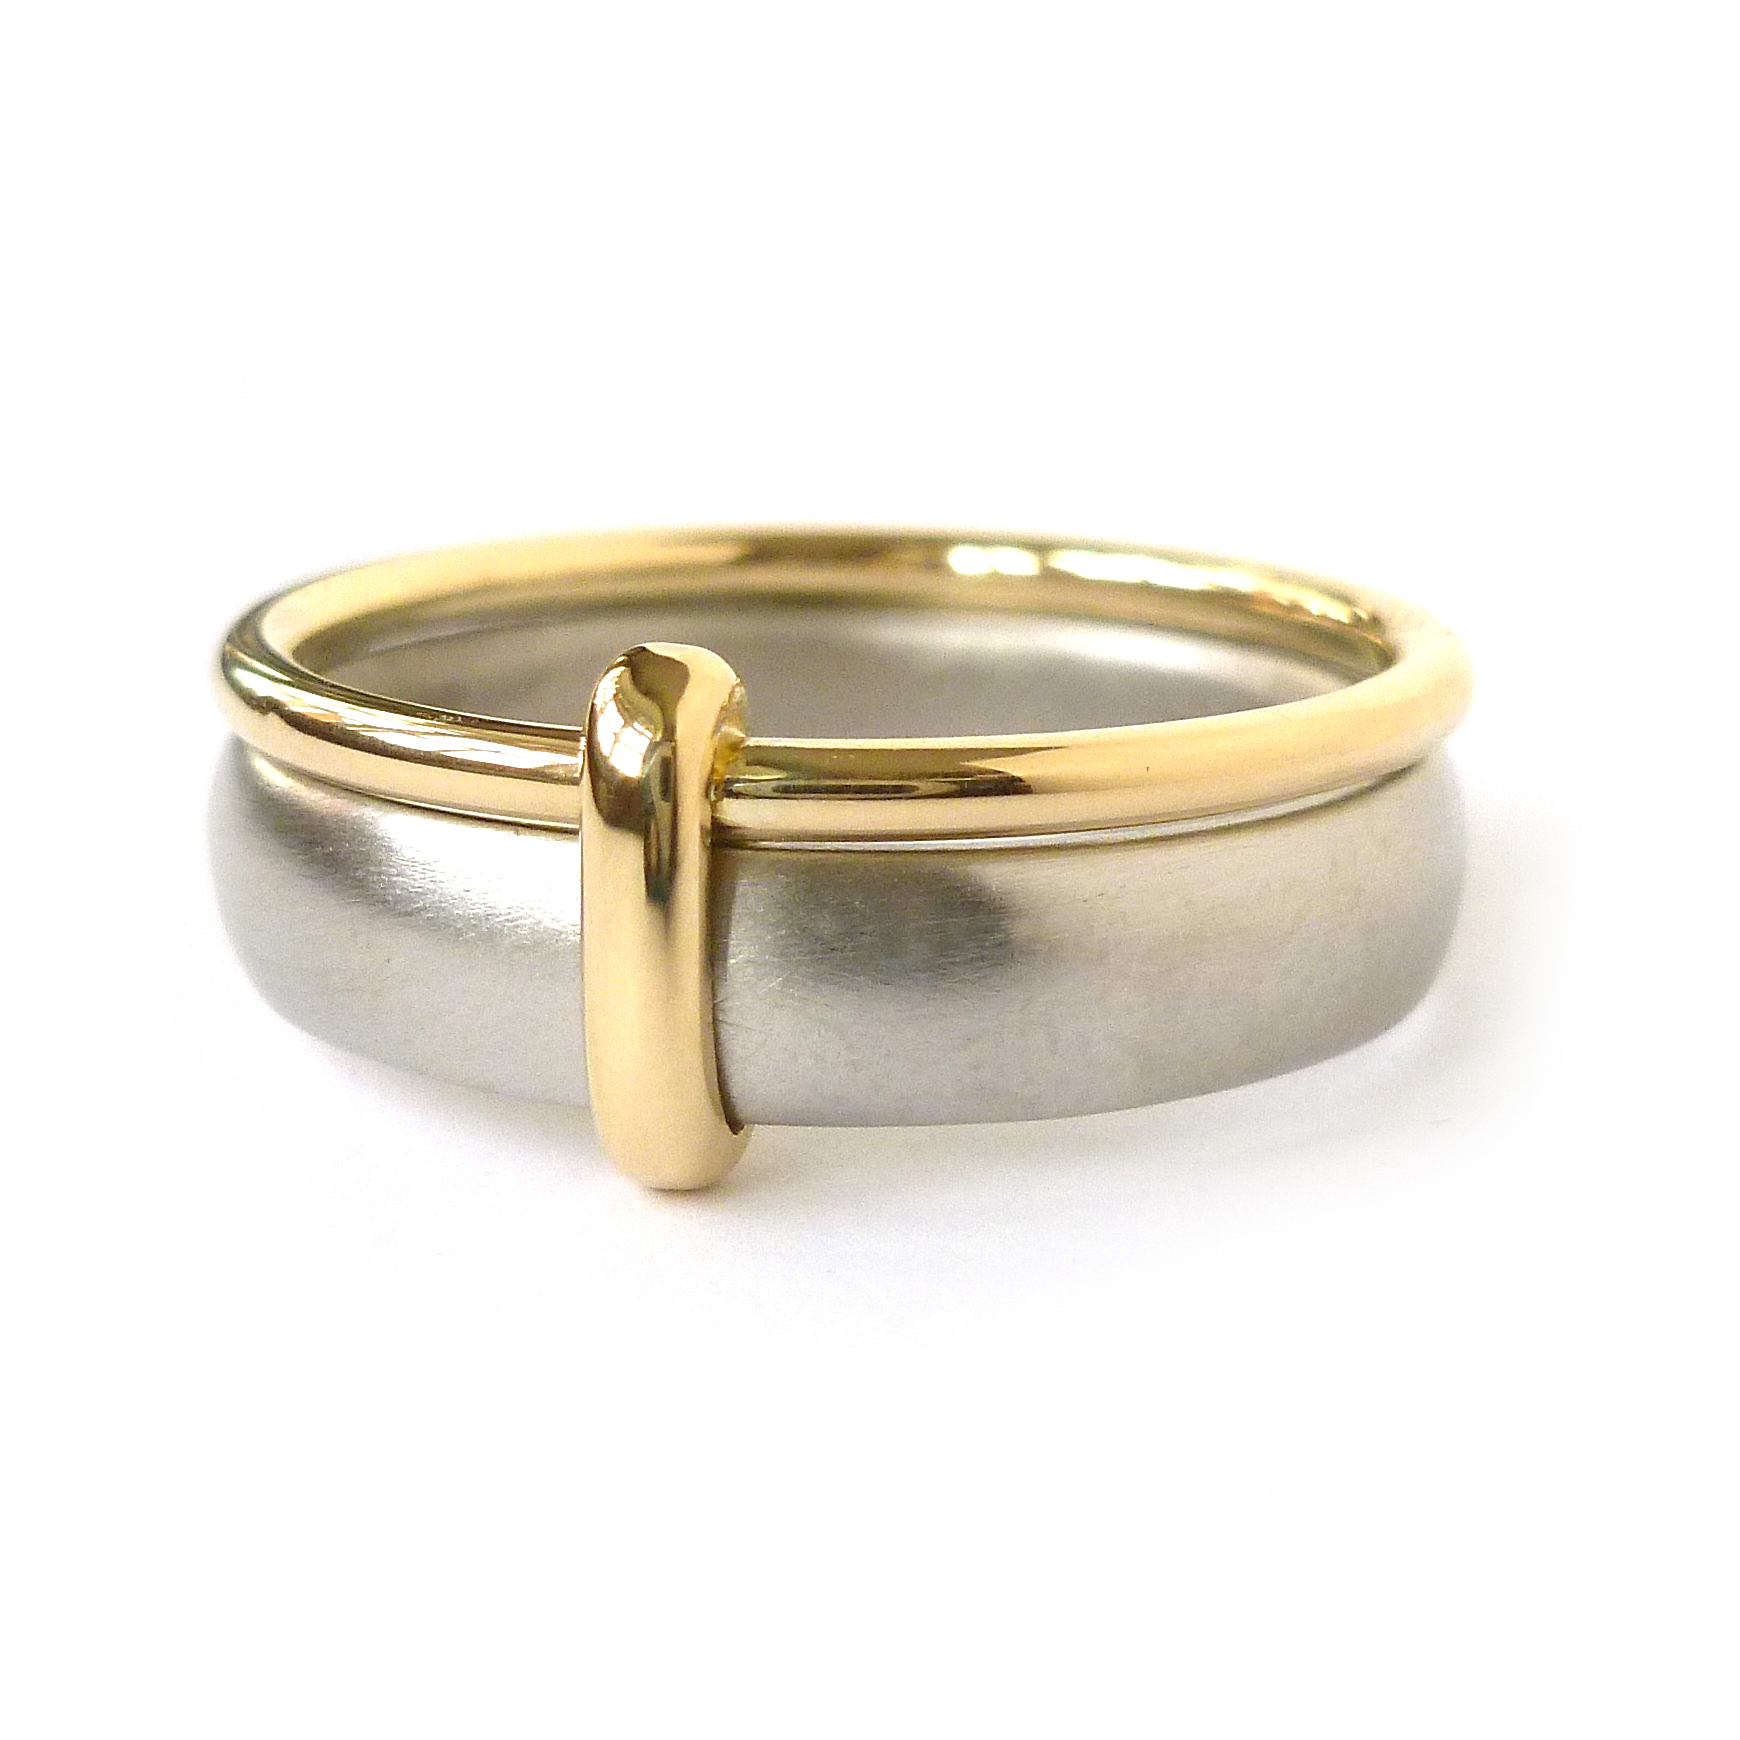 struktur jewellery rings contemporary steiner claudia